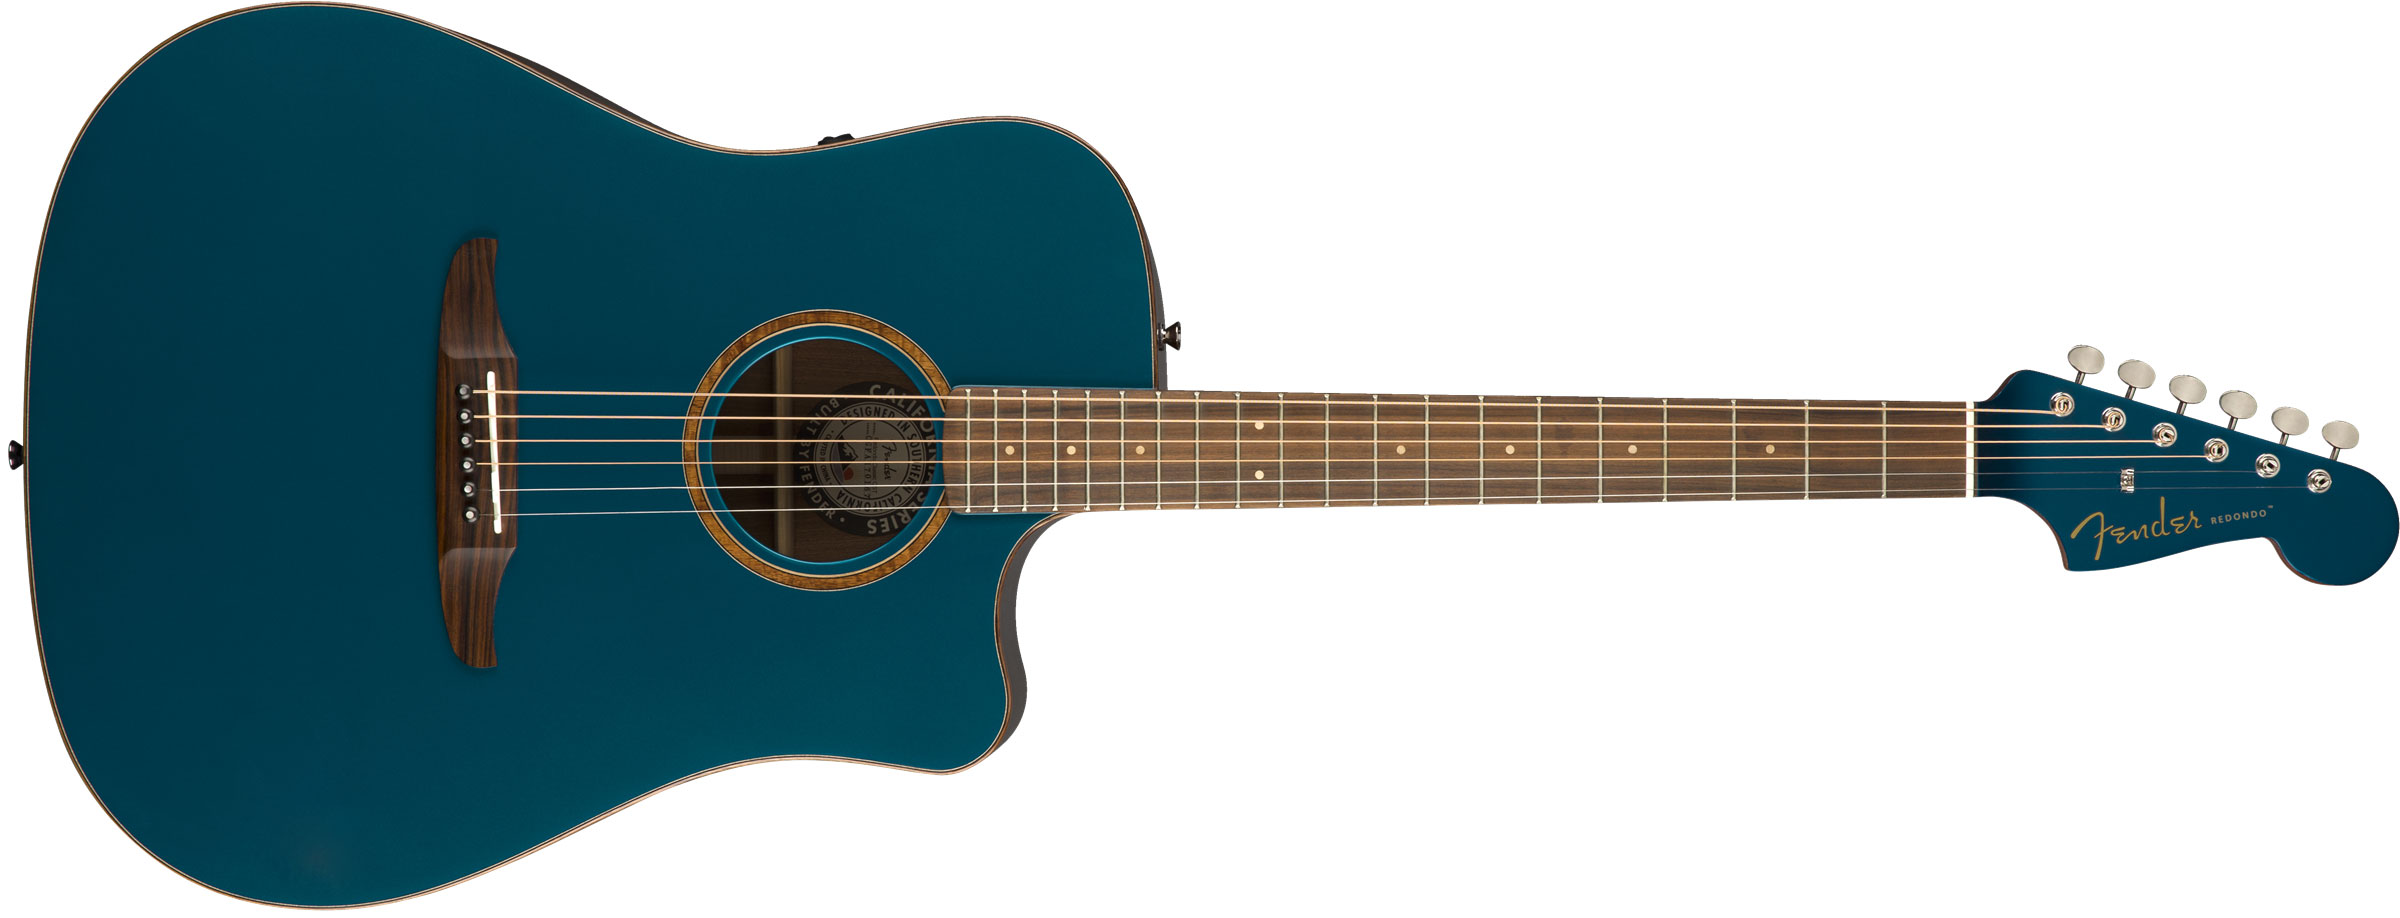 VIOL�O FENDER REDONDO CLASSIC W/ DELUXE GIG BAG 097-0913-299 COSMIC TURQUOISE